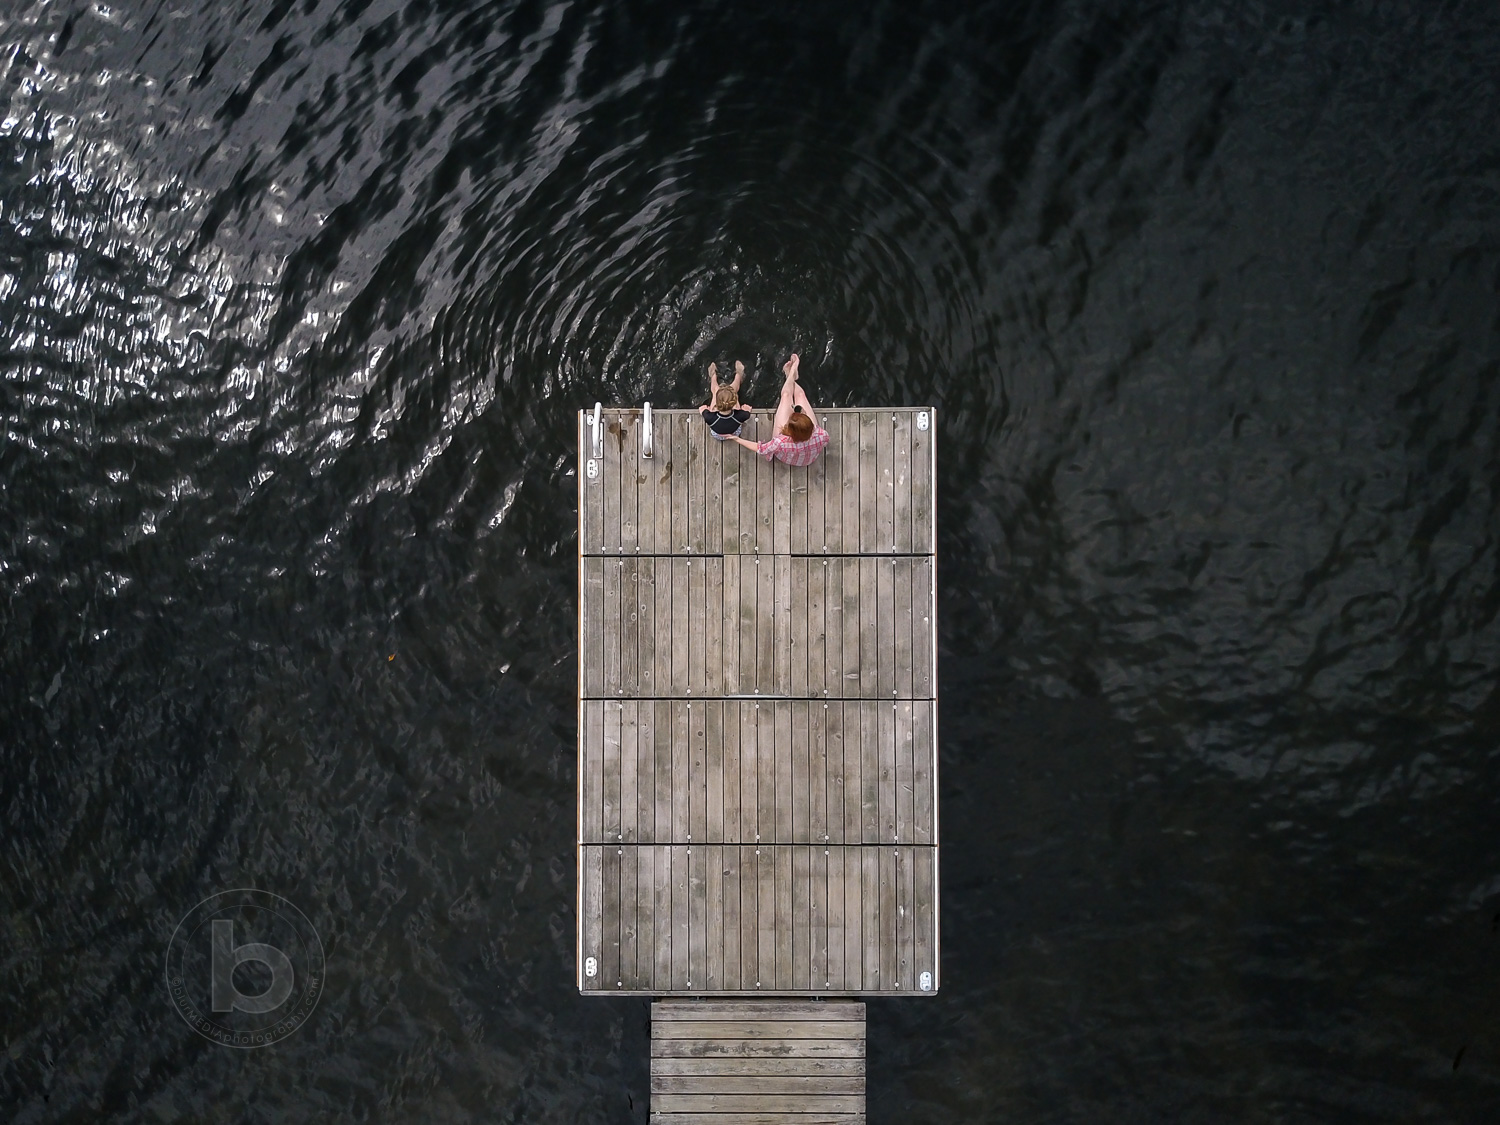 Aerial photo of a woman (40) and girl (11) sitting on a wooden dock at a lake in the Kawartha cottage region near Haliburton, Ontario, Canada